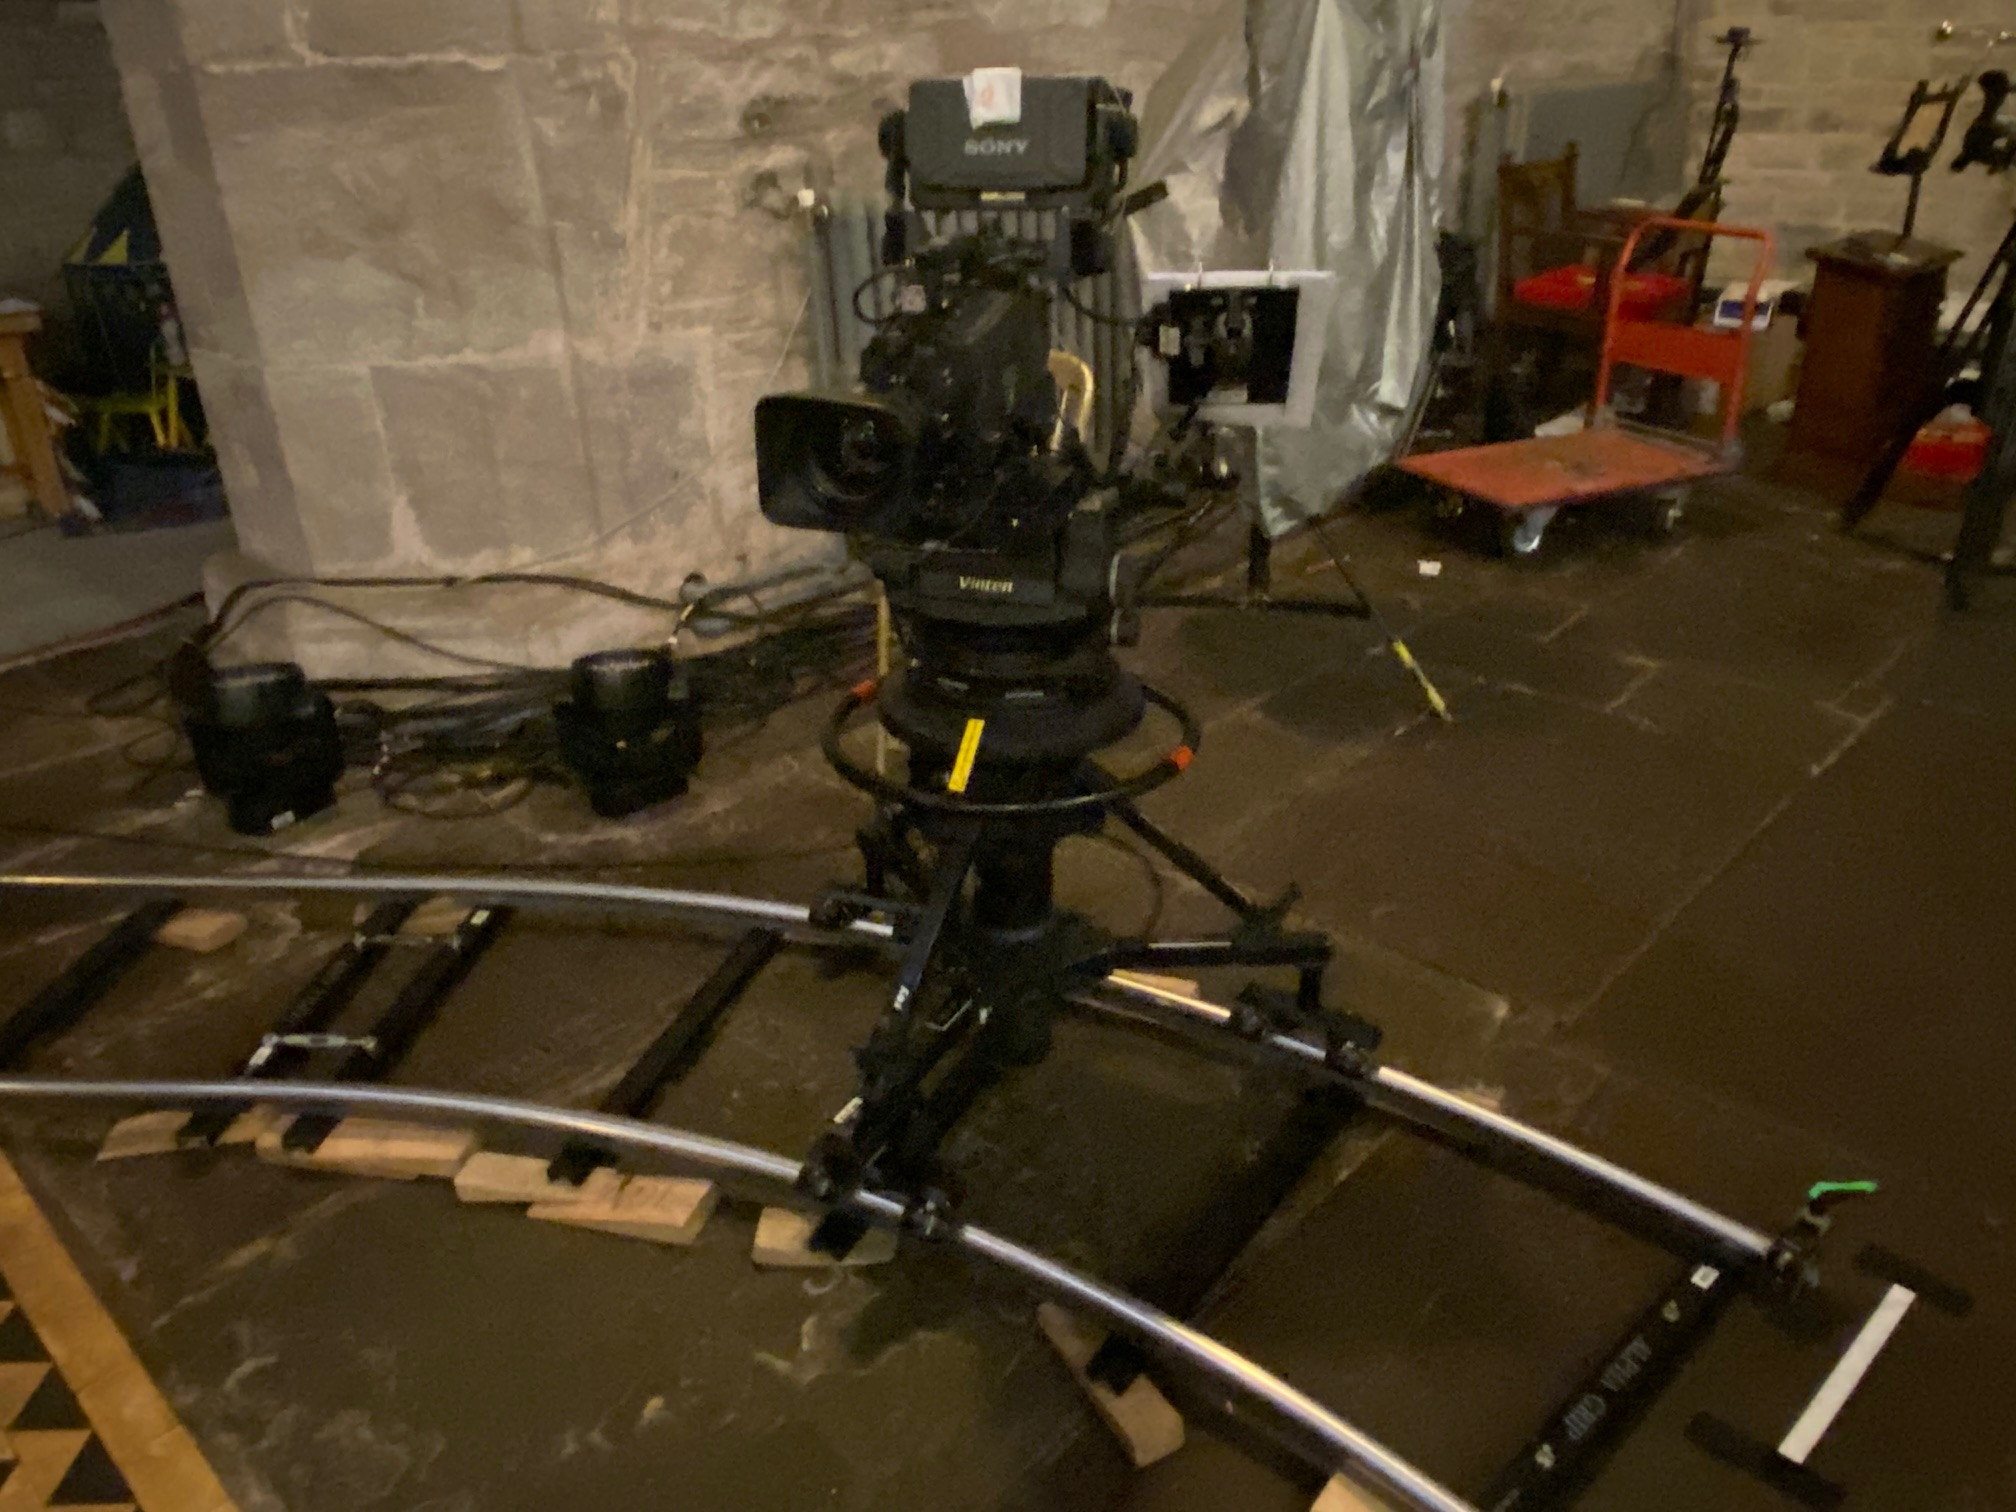 Huge amounts of tracking for the mobile filming were laid out in the cathedral